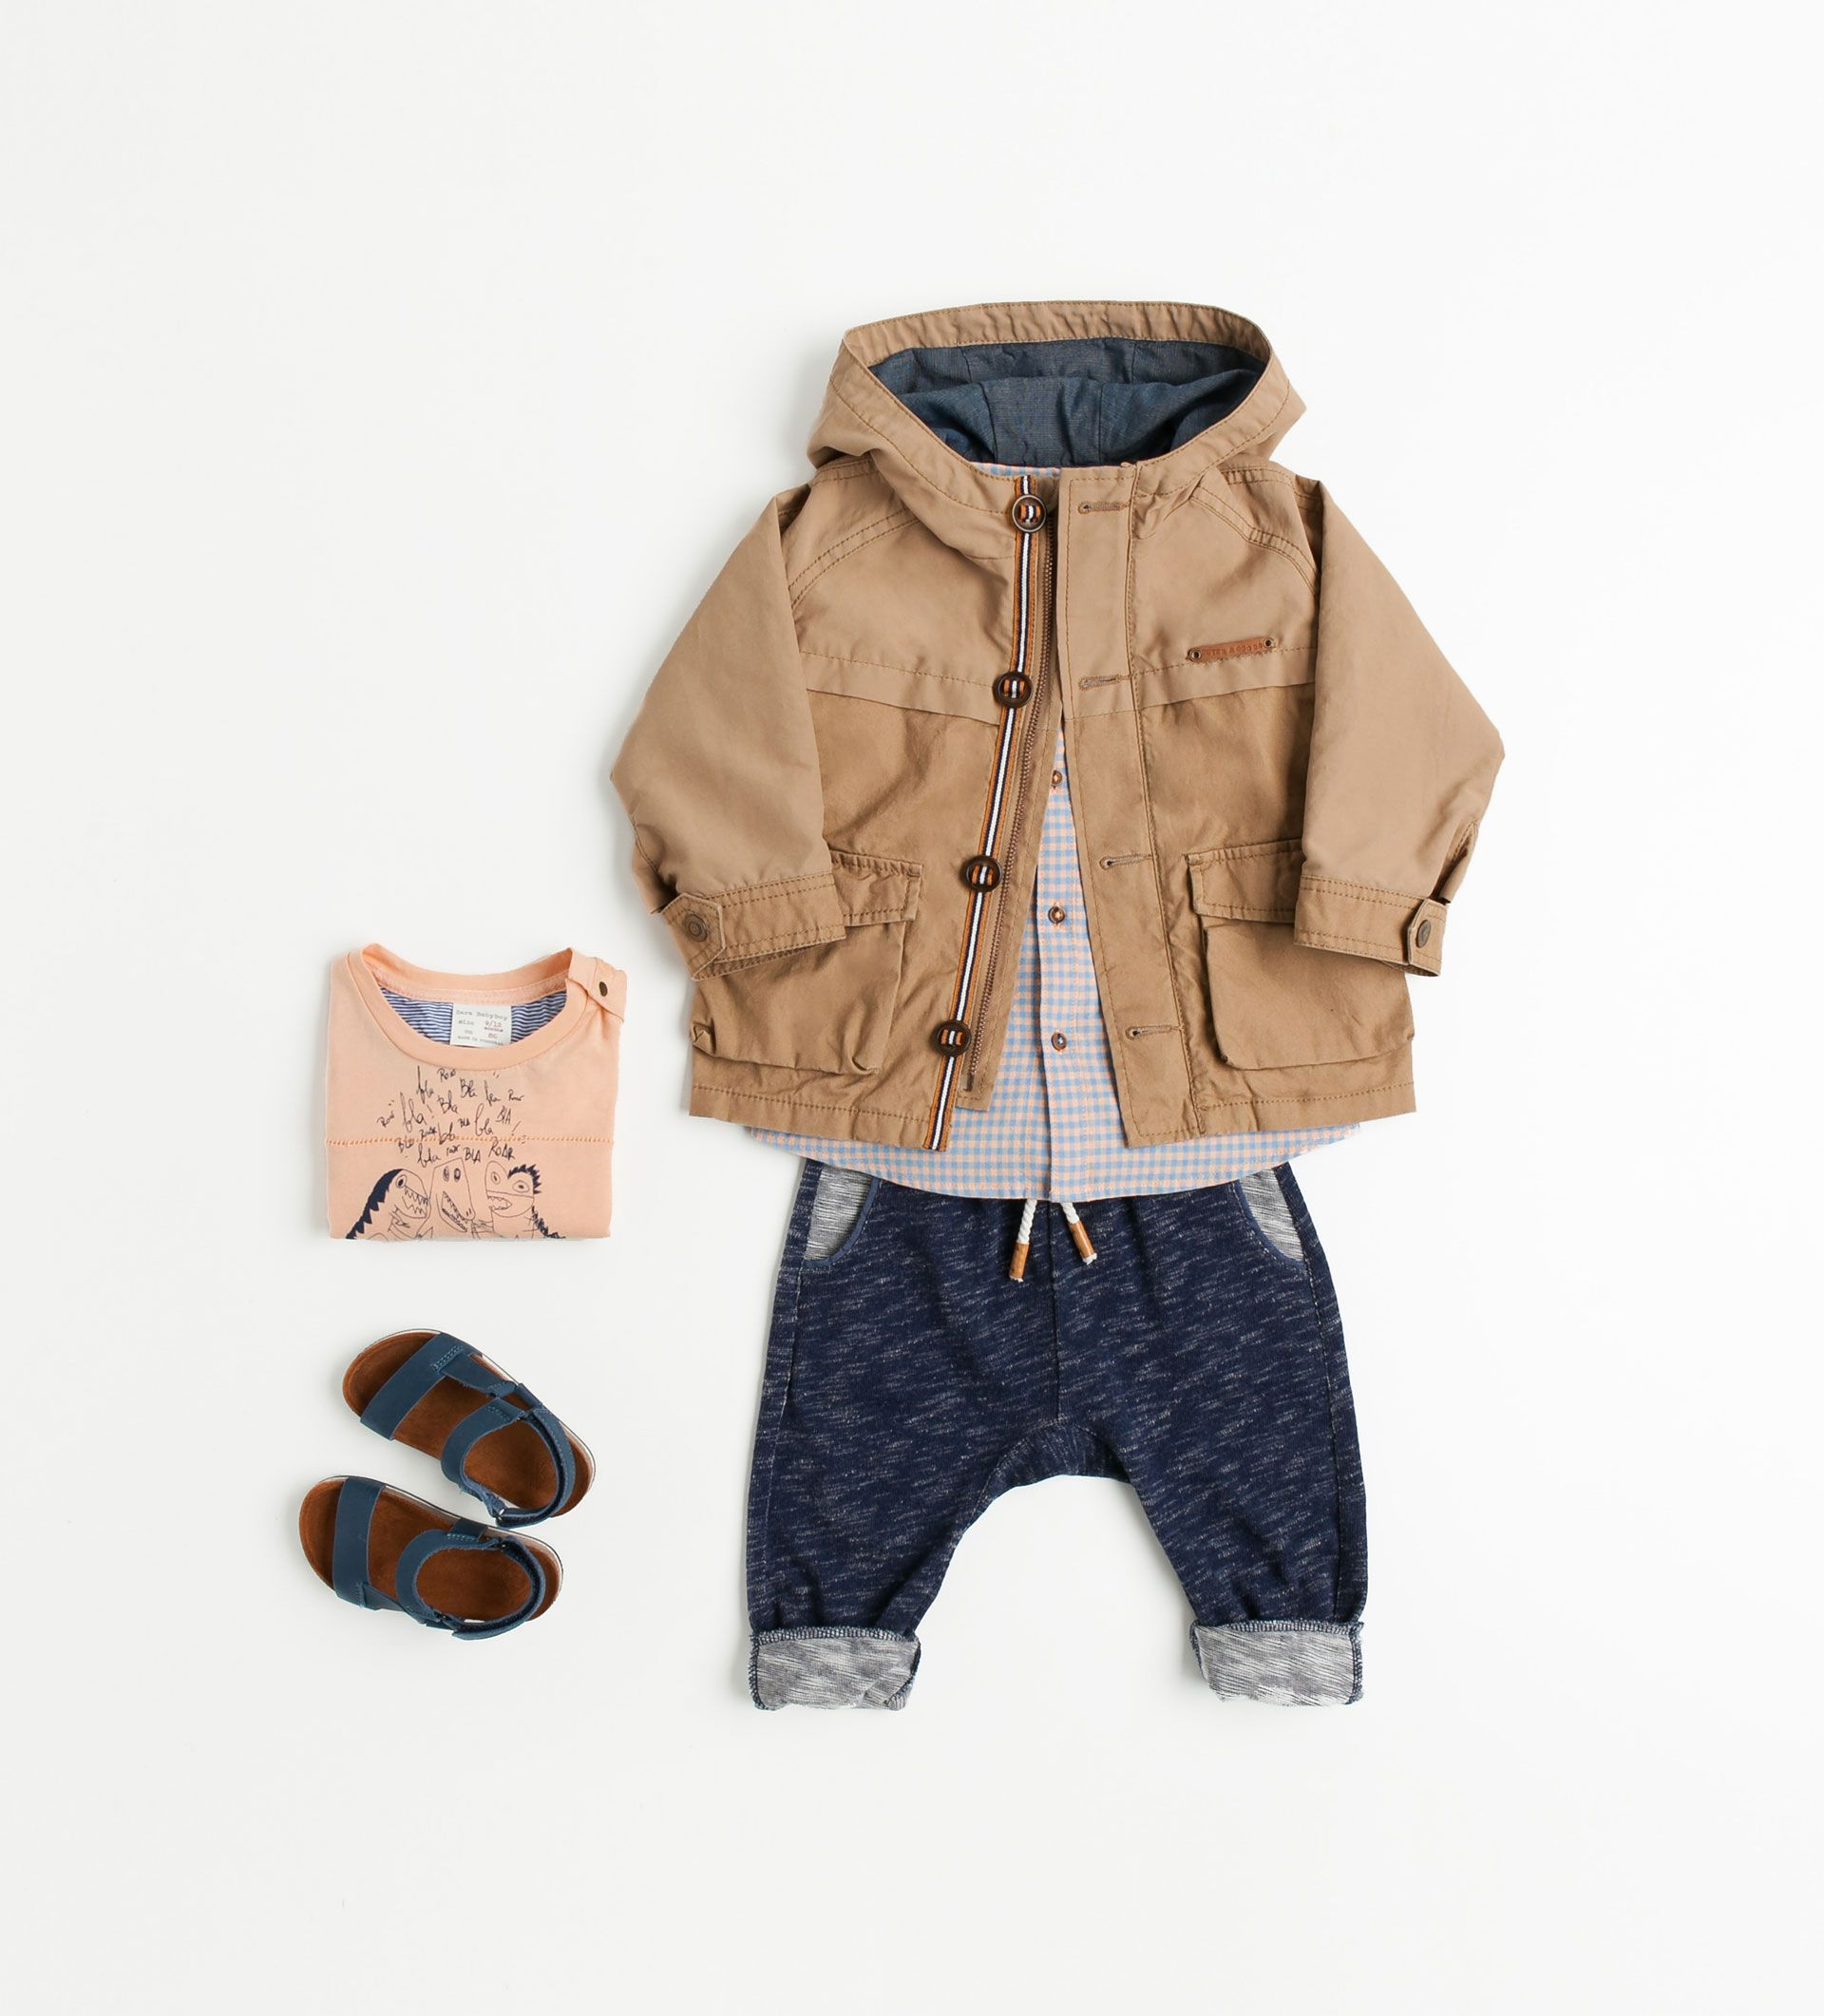 zara baby boy outfit style for the little gent pinterest bekleidung und babys. Black Bedroom Furniture Sets. Home Design Ideas